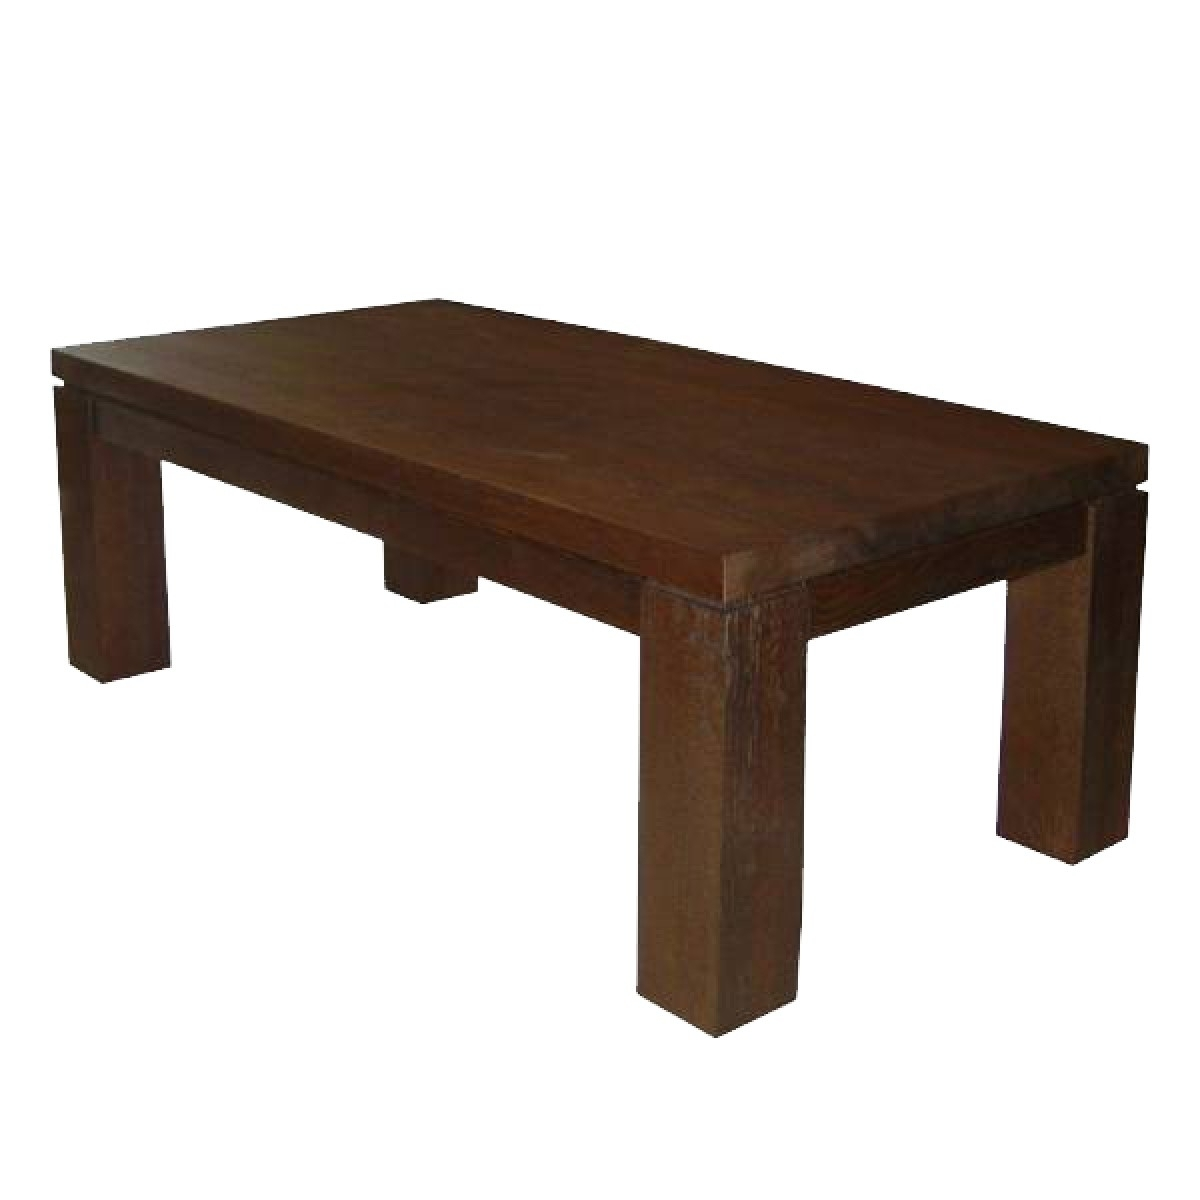 Most Recently Released Adam Coffee Tables Inside Adam Coffee Table – Coffee Tables – Shopproduct – Furniture (View 12 of 20)